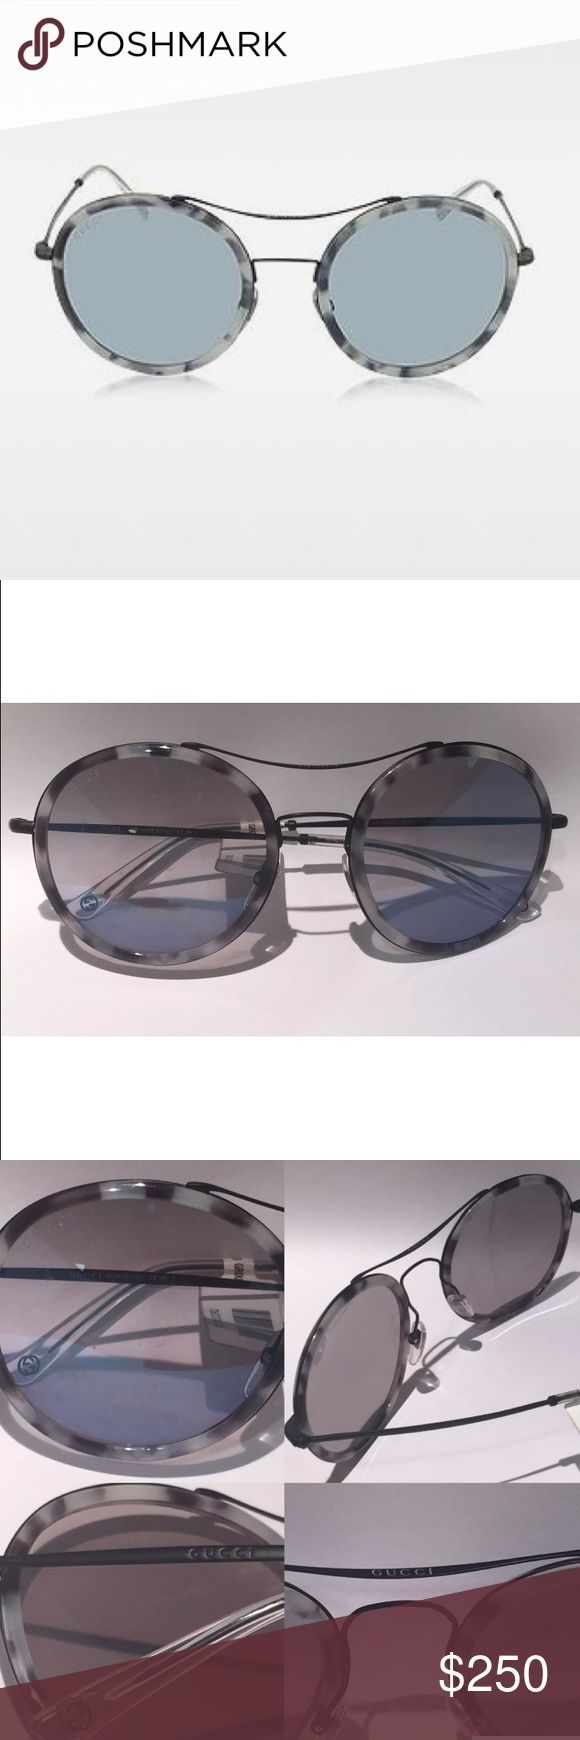 02ea958c6b33b Auth New Gucci GG 4252 N S Round Sunglasses 100% Authentic and brand